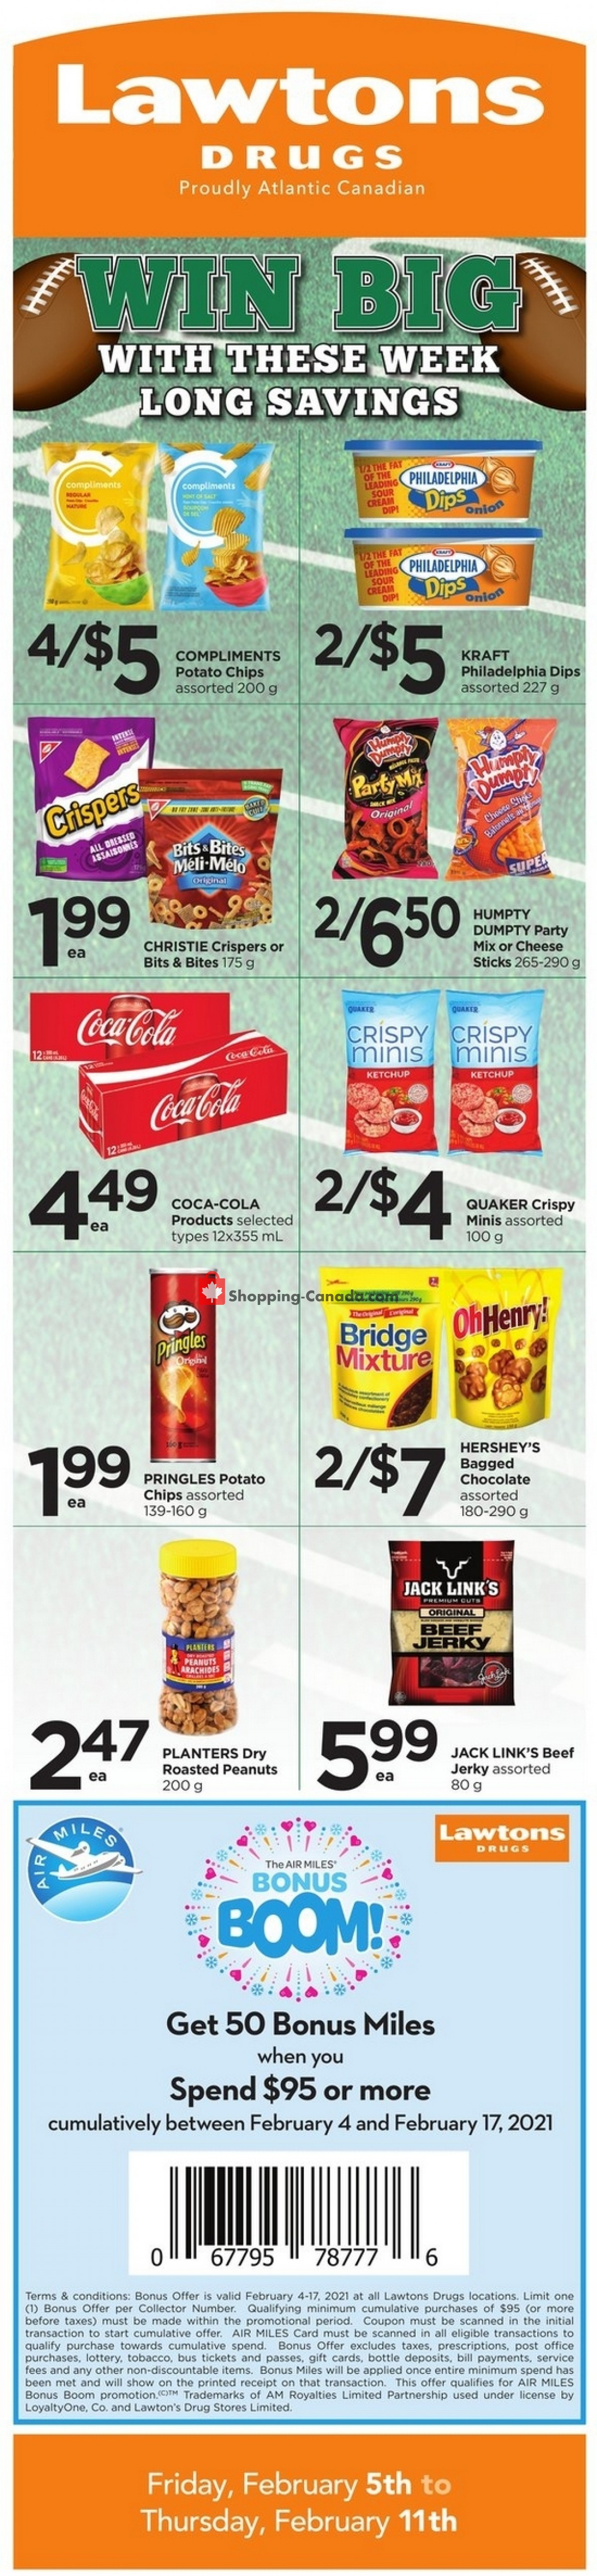 Flyer Lawtons Drugs Canada - from Friday February 5, 2021 to Thursday February 11, 2021